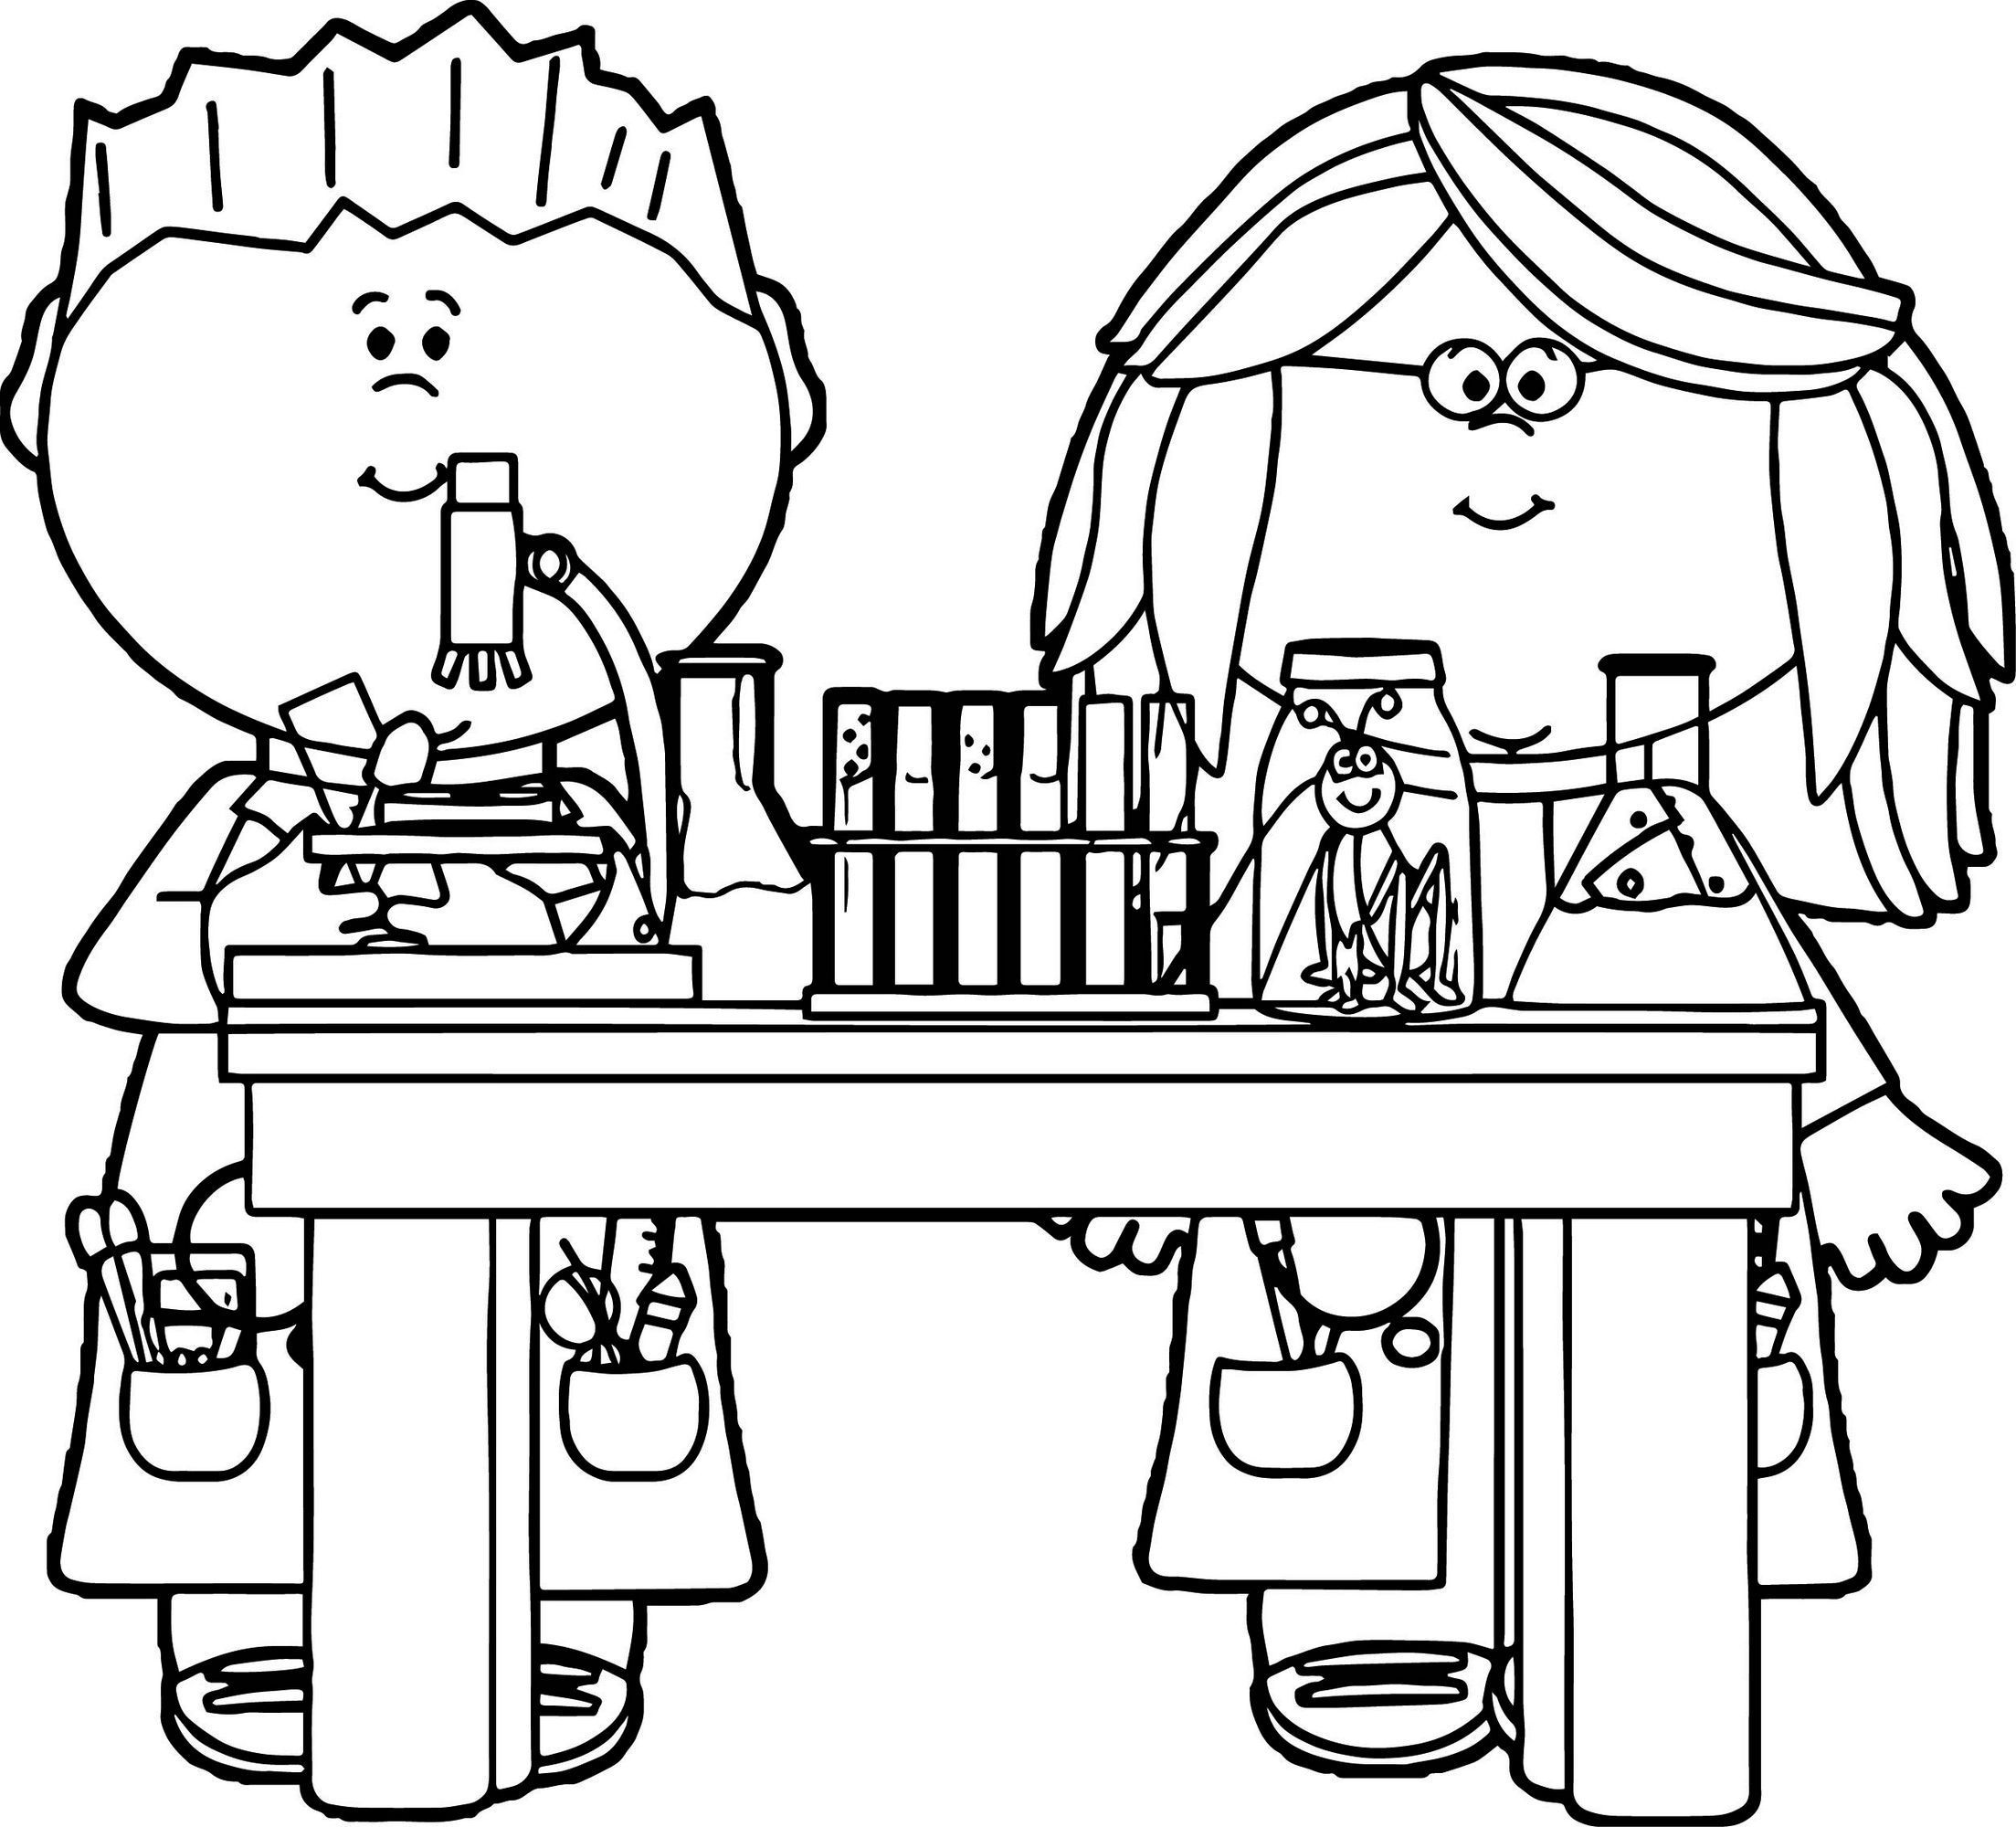 science themed coloring pages kids in science class coloring page printable profession science coloring pages themed